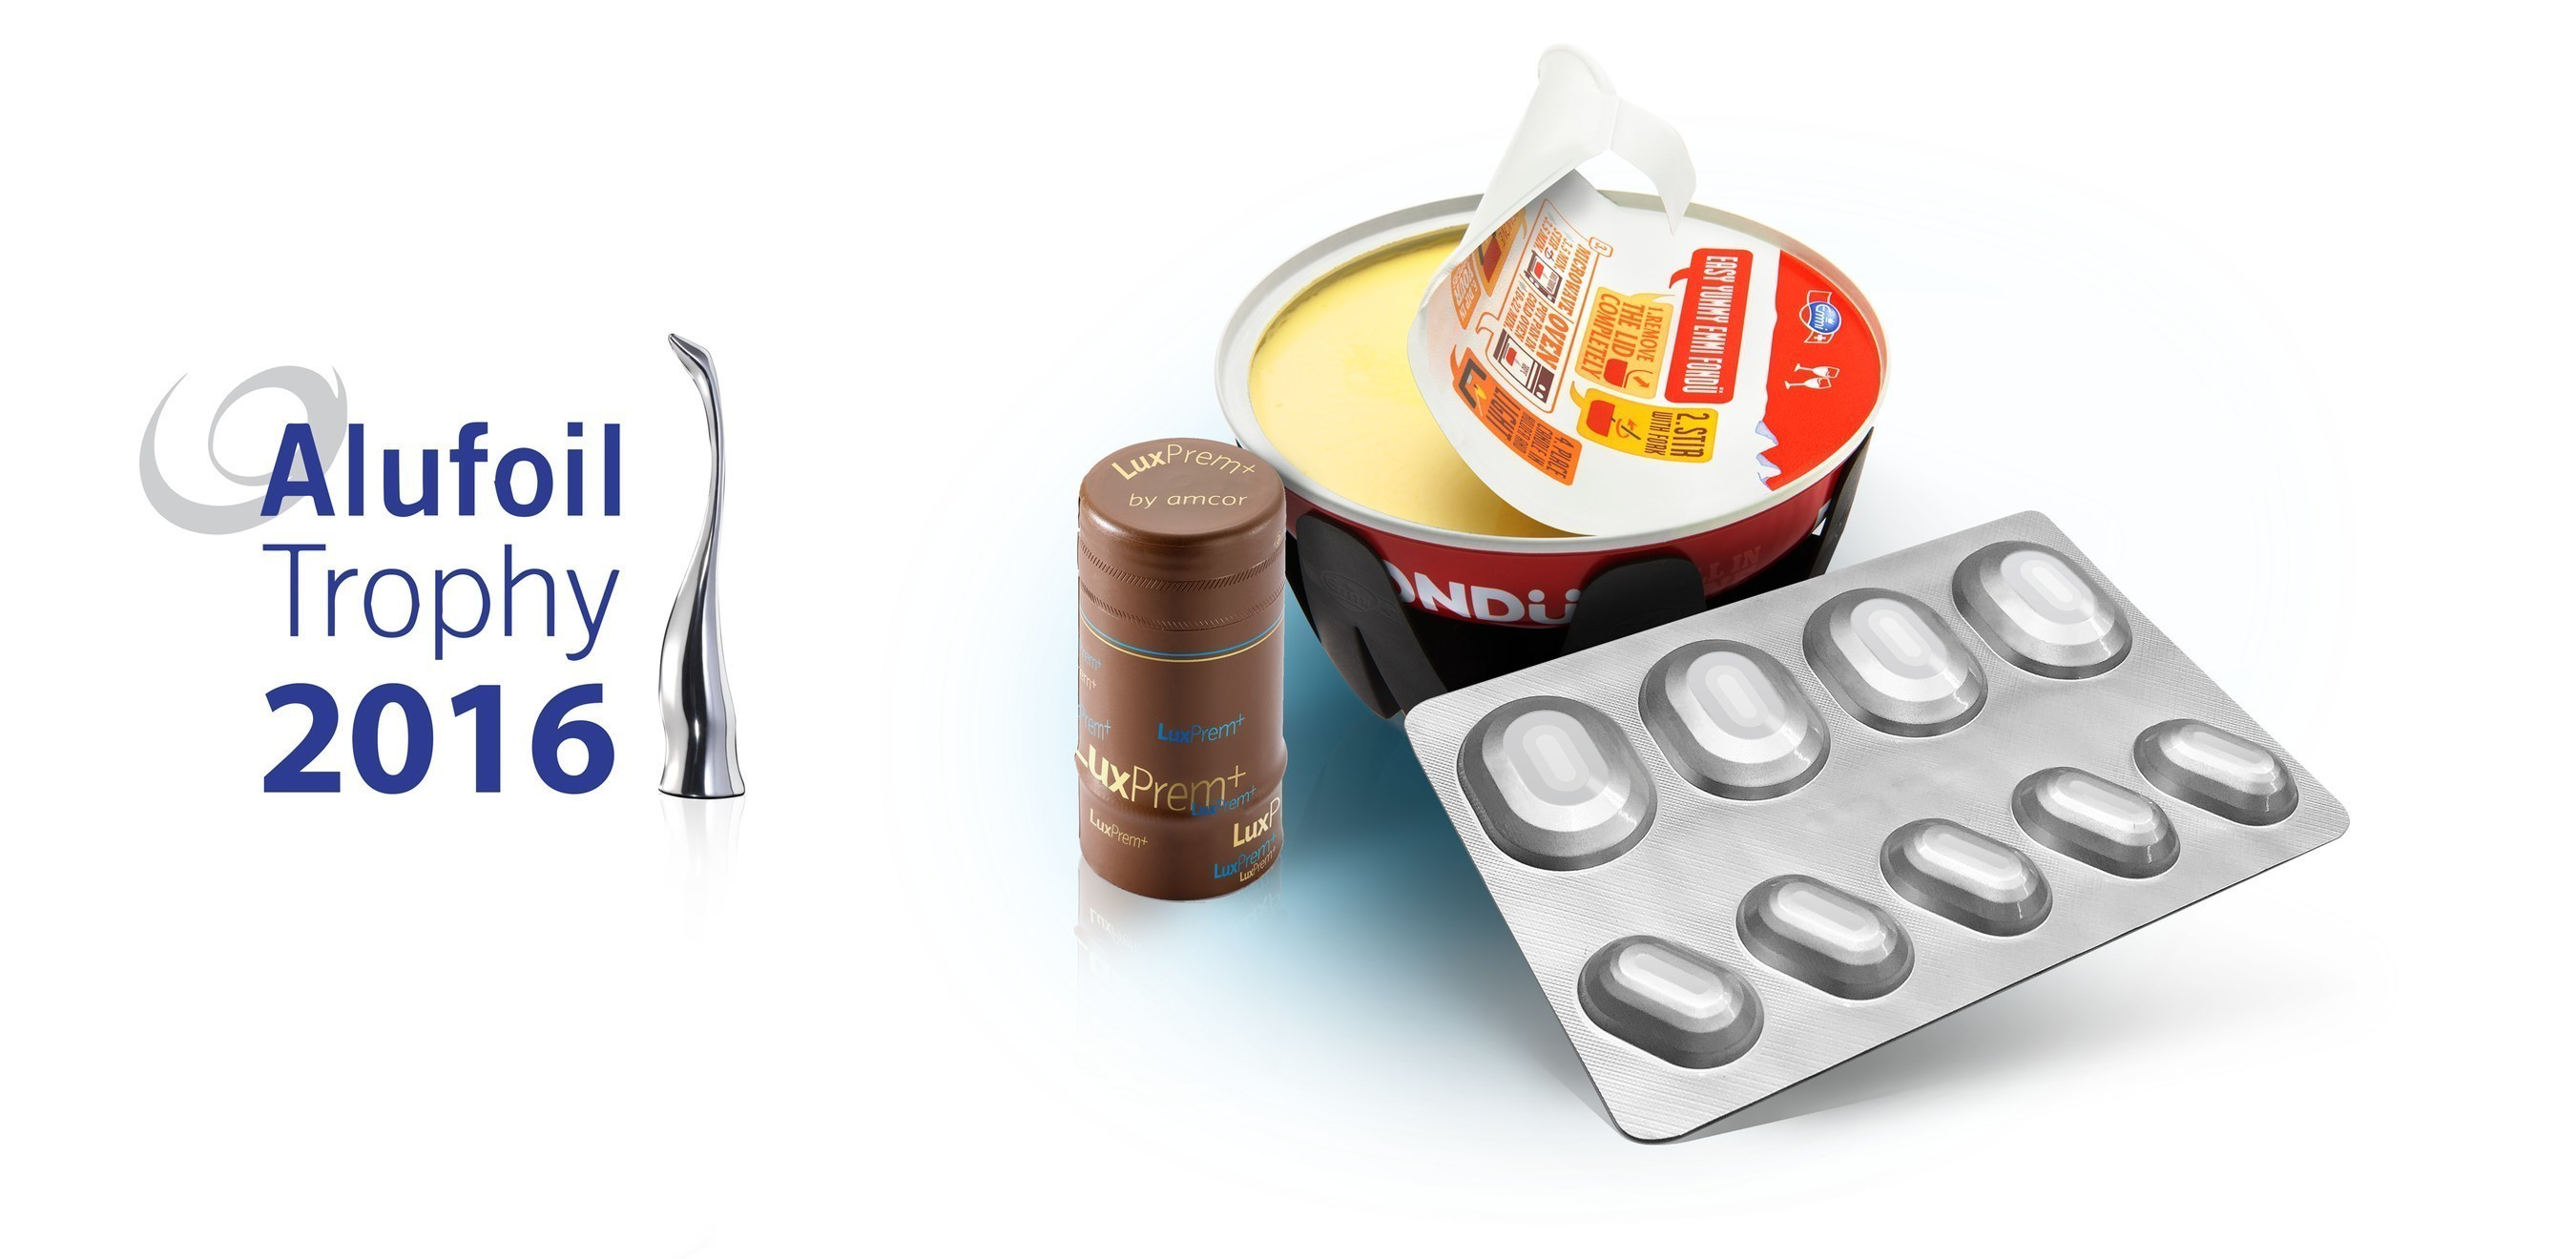 "Amcor products win three Alufoil Trophy 2016 awards. Left to right: Amcor LuxPrem+ overcap for premium spirits, Emmi's ""All In One Fondu"" ready-to-eat cheese fondue packaging, and Amcor's Formpack(R) Ultra blister for pharmaceutical products"